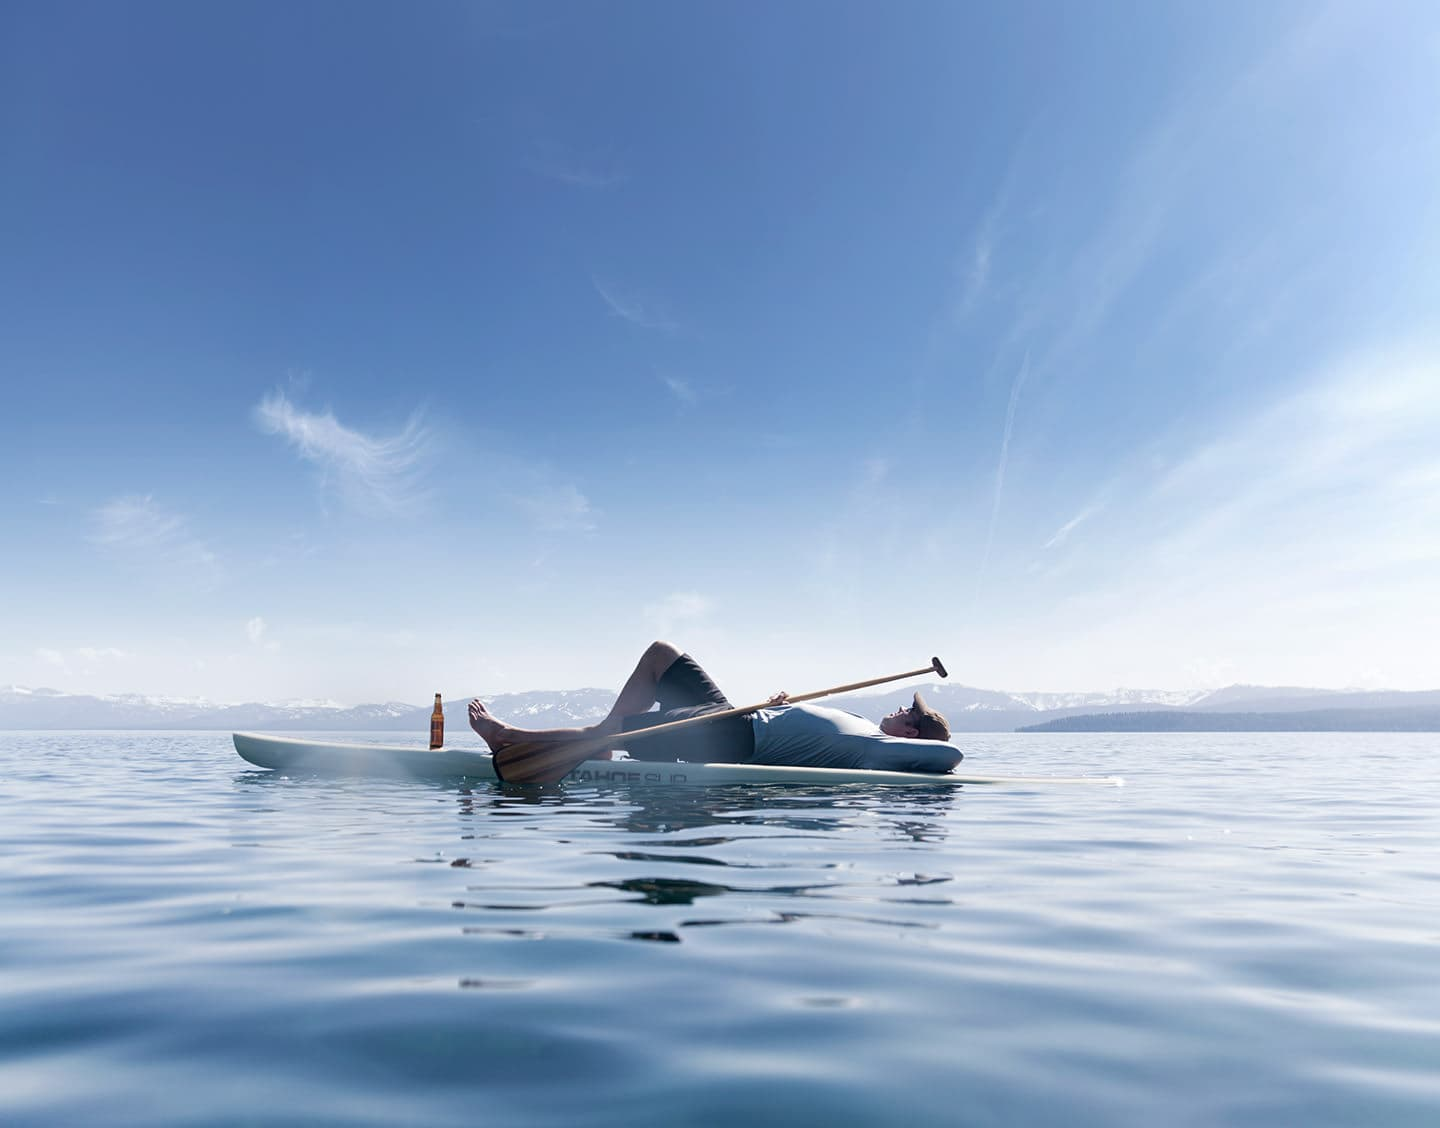 Man-laying-on-paddle-board-on-Tahoe-lake-with-mountains-Rod-McLean_G